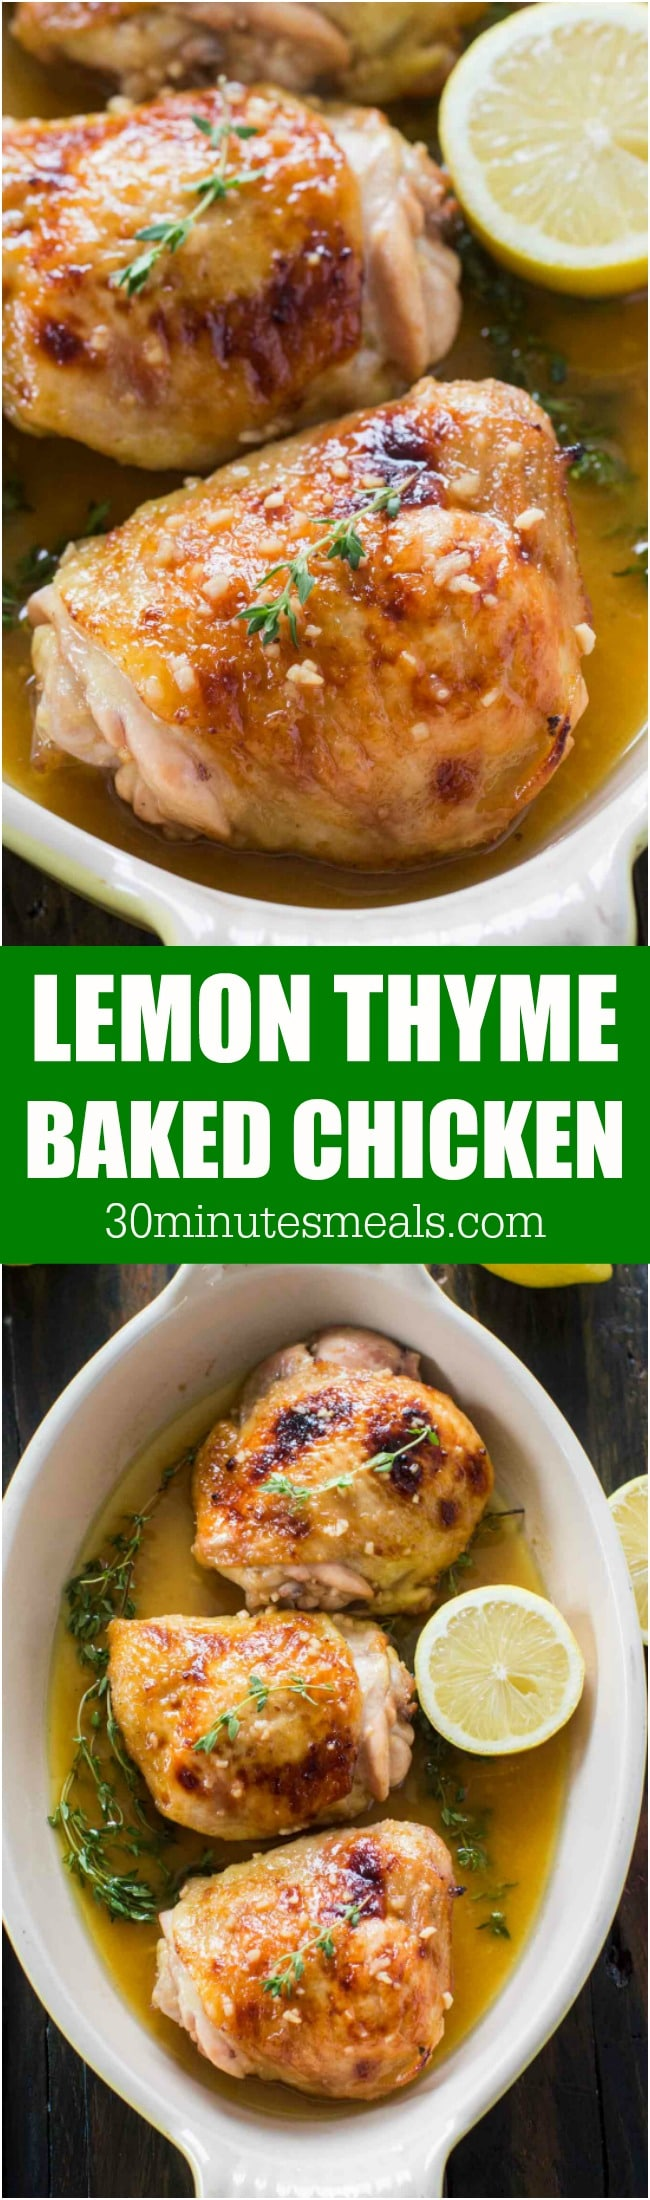 Baked Lemon Thyme Chicken made with just a few ingredients, with a sweet and savory flavor, ready in just 30 minutes in one pan!